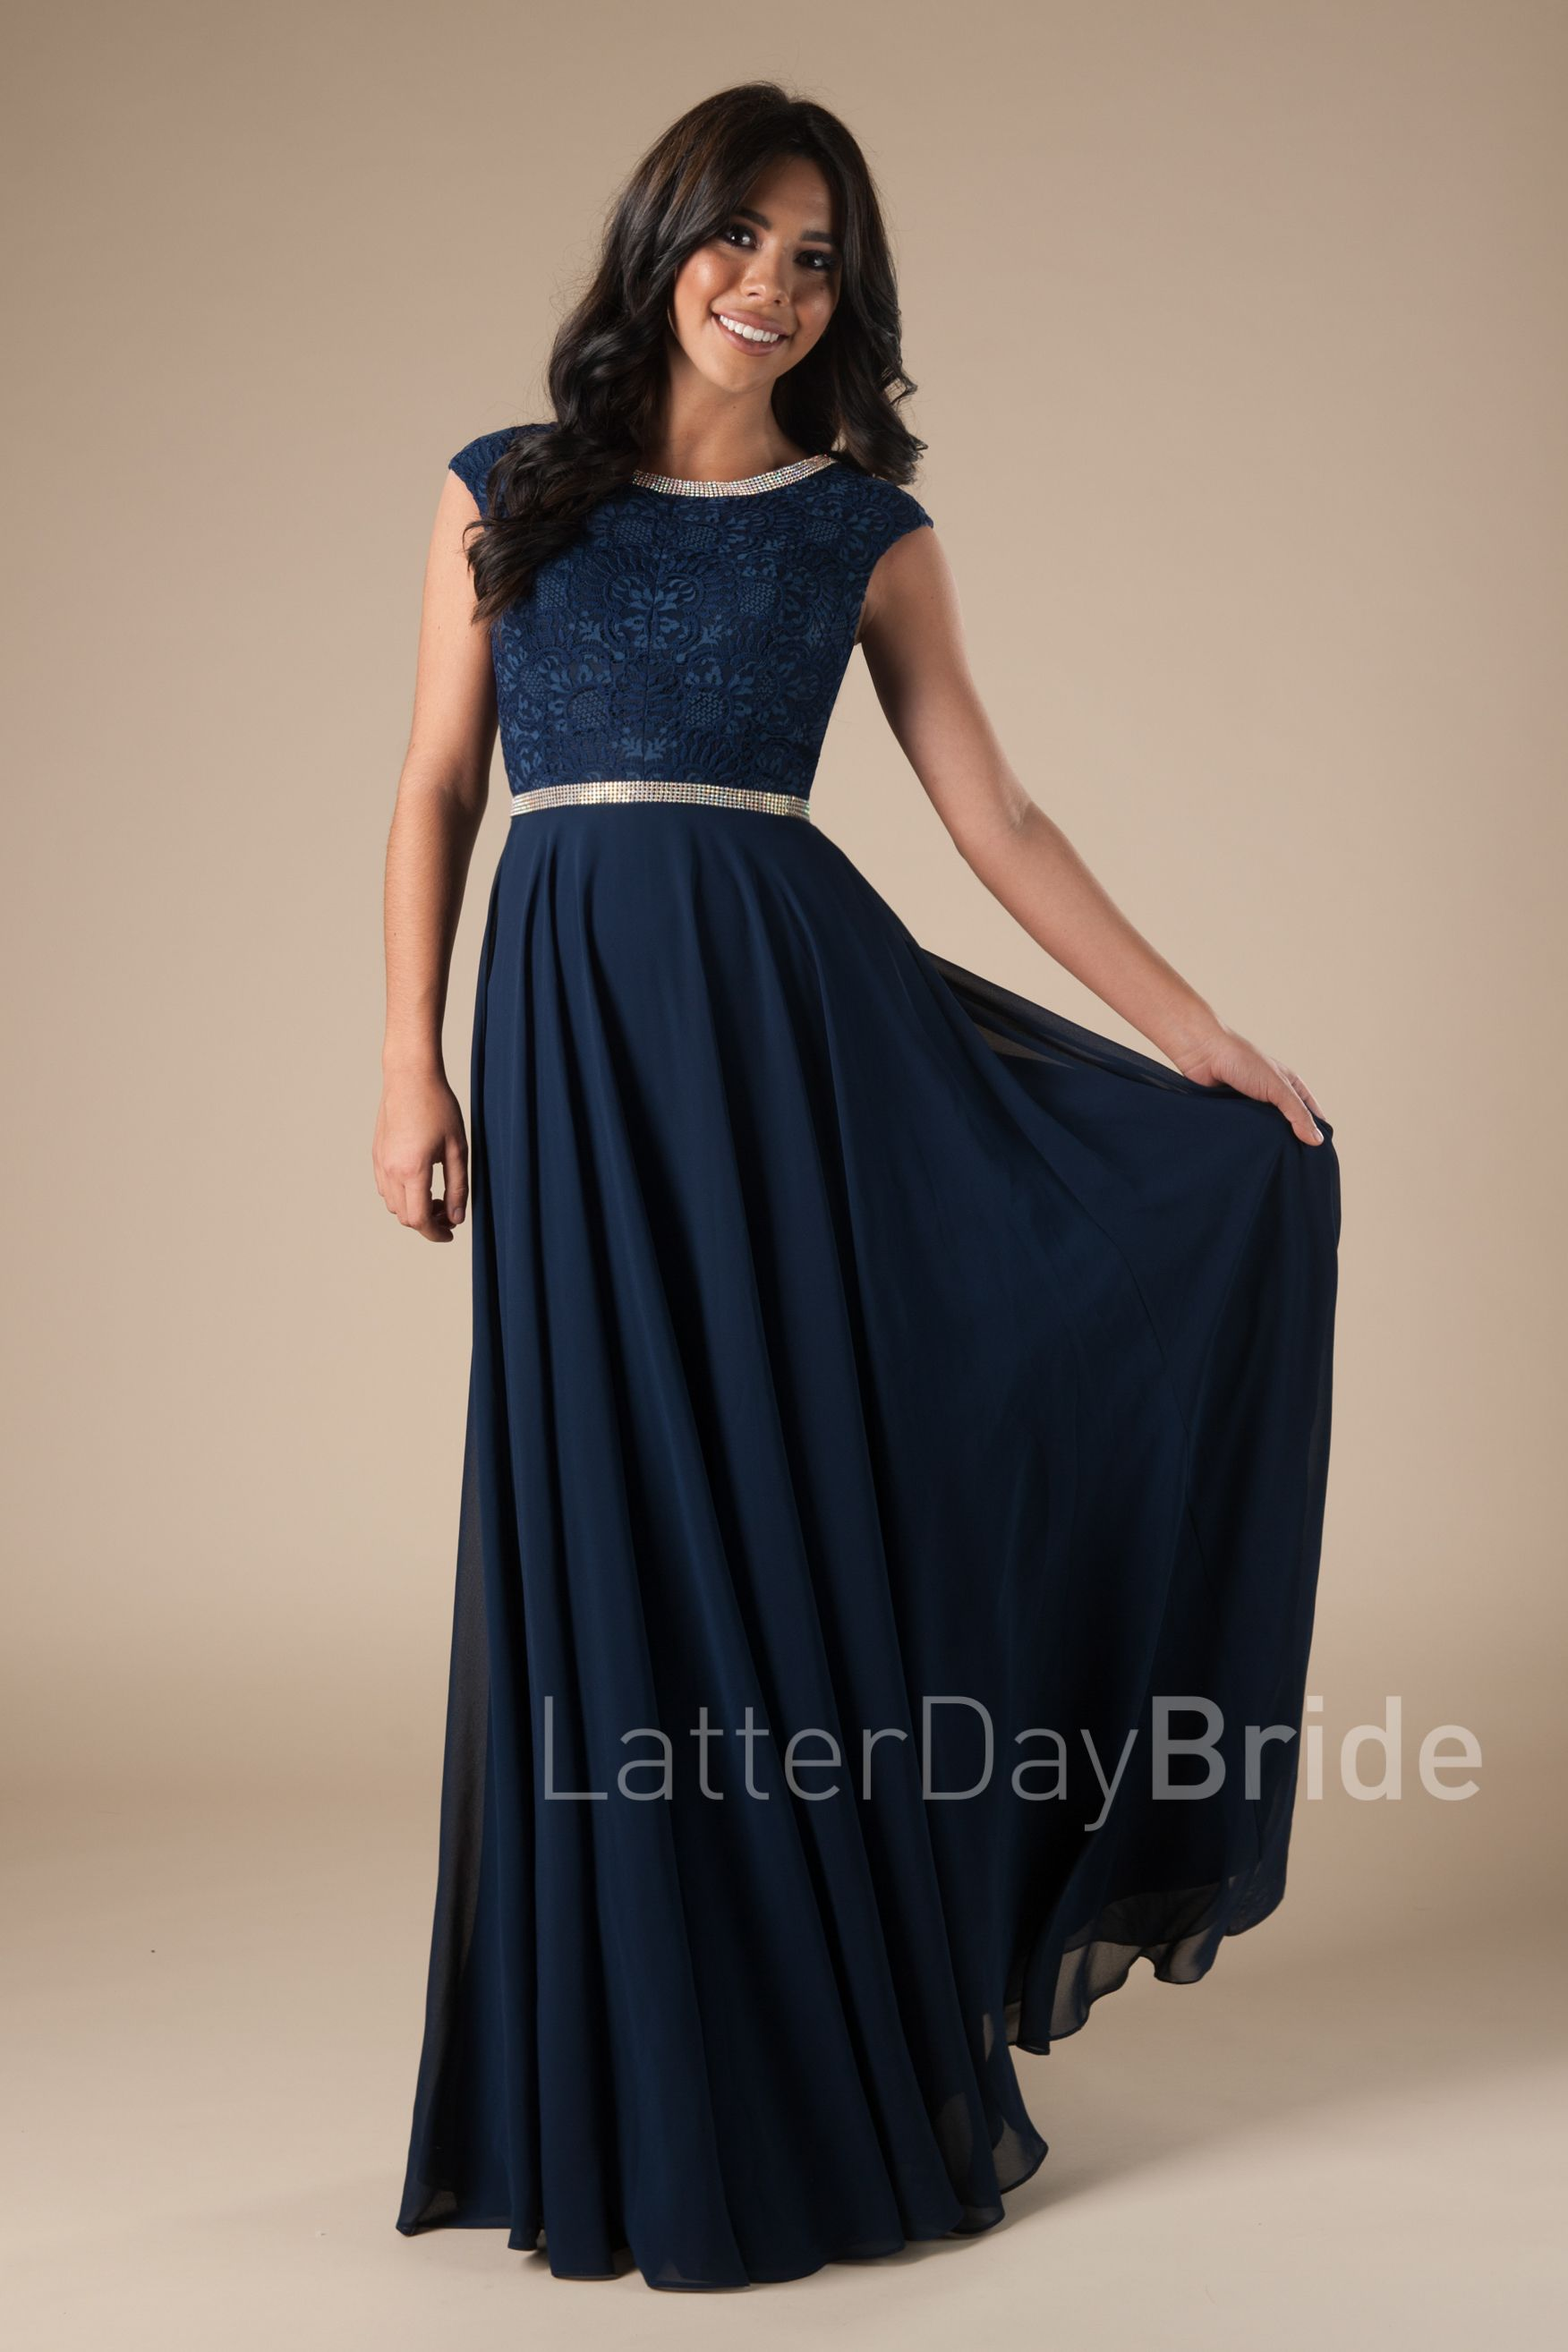 Winter ball | Clothes | Pinterest | Modest prom dresses, Prom and Navy